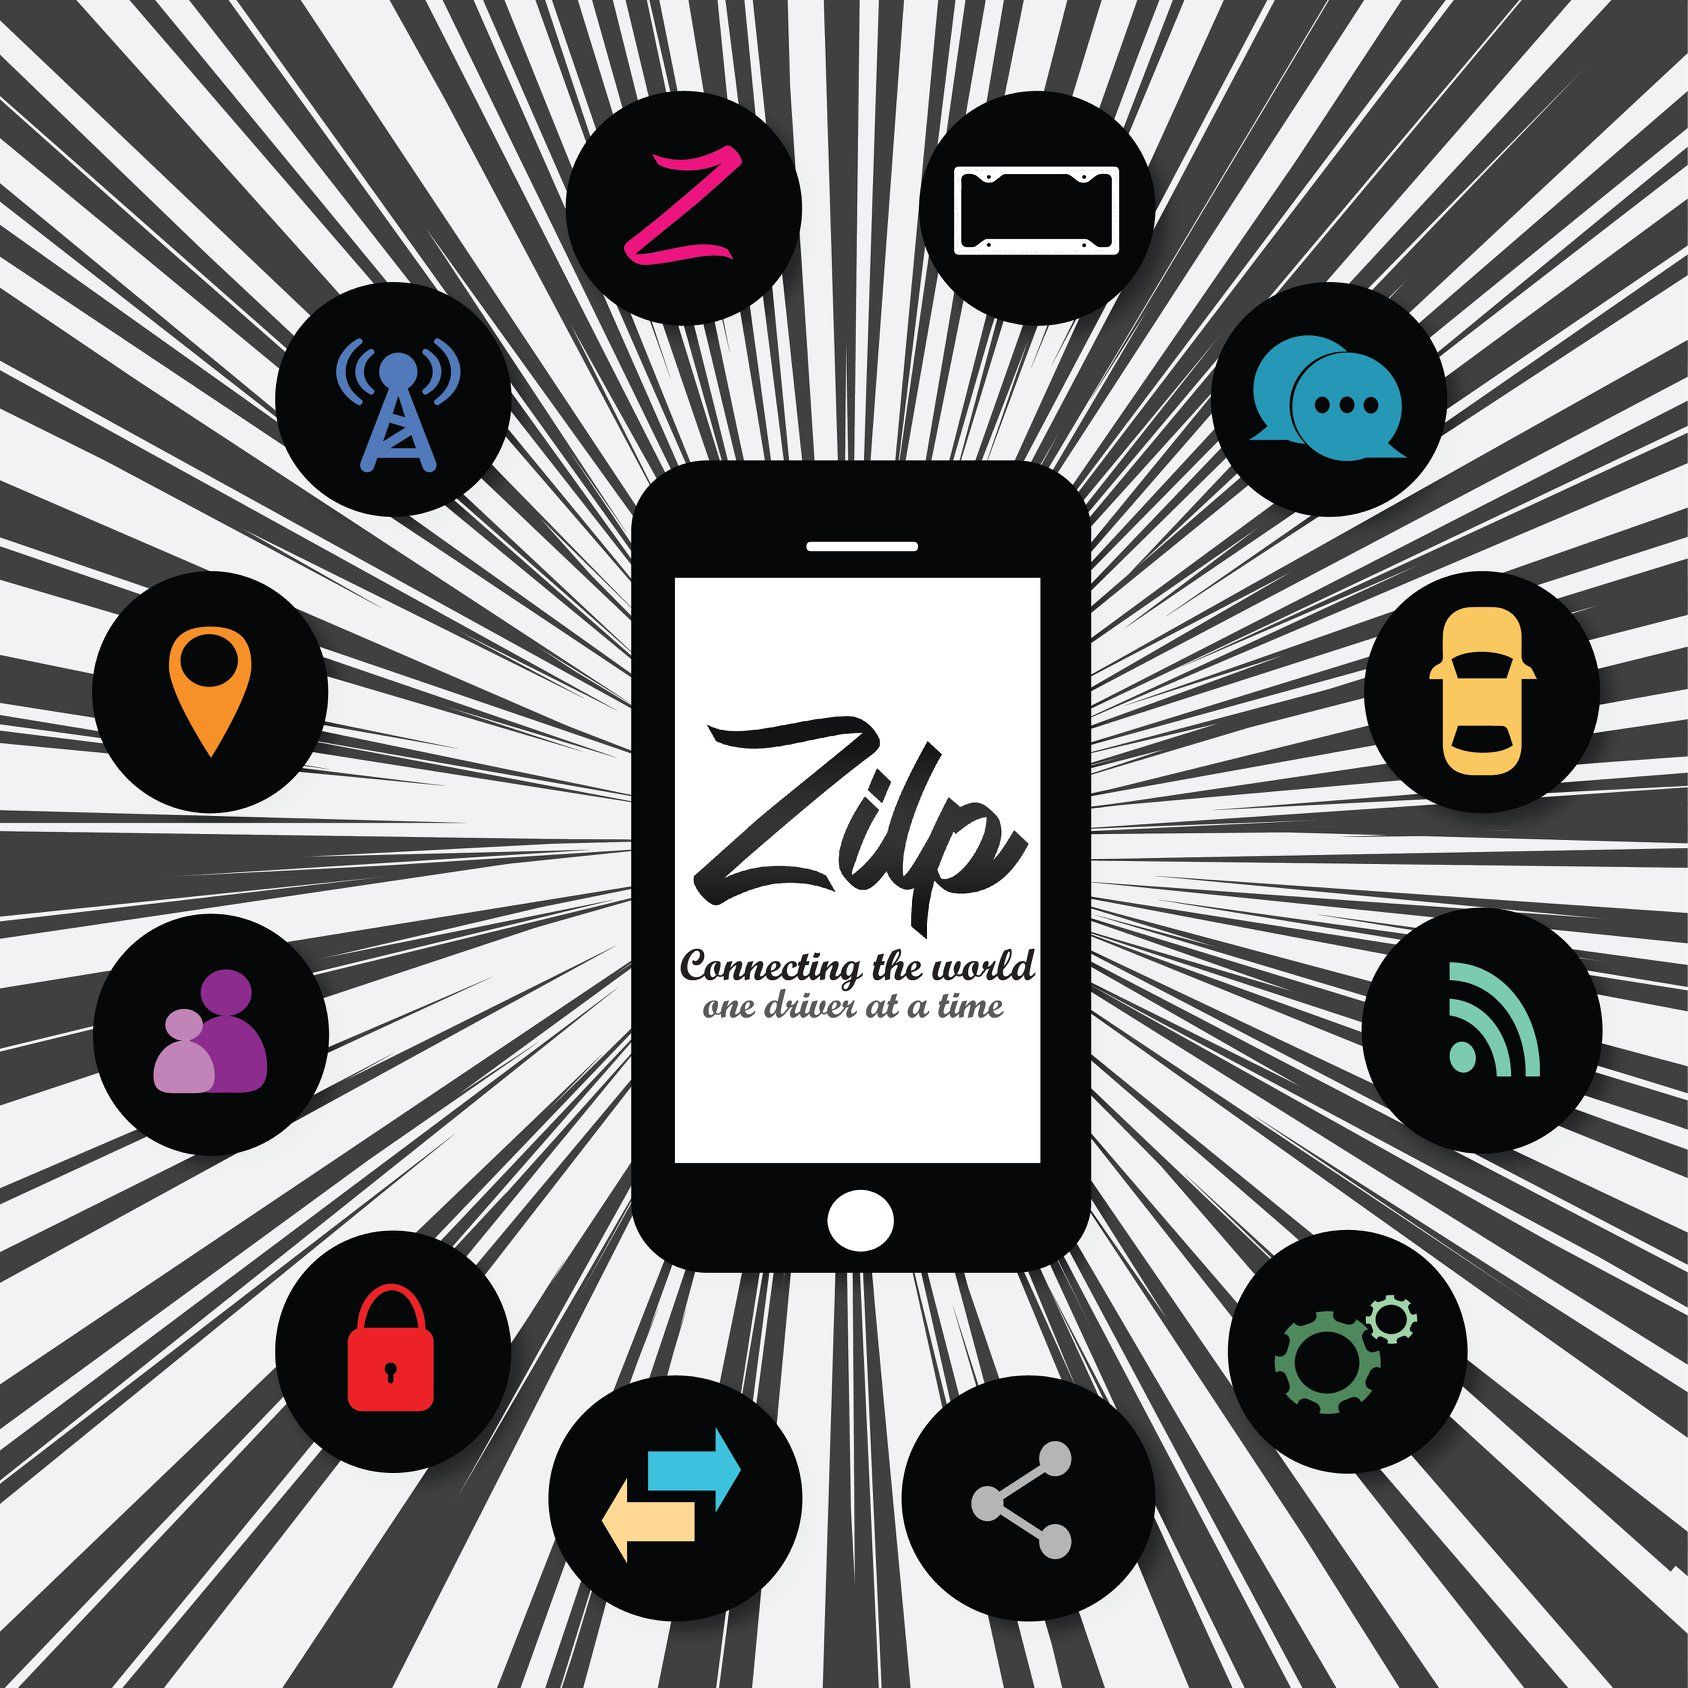 All these features are fine and dandy, download Zilp, they